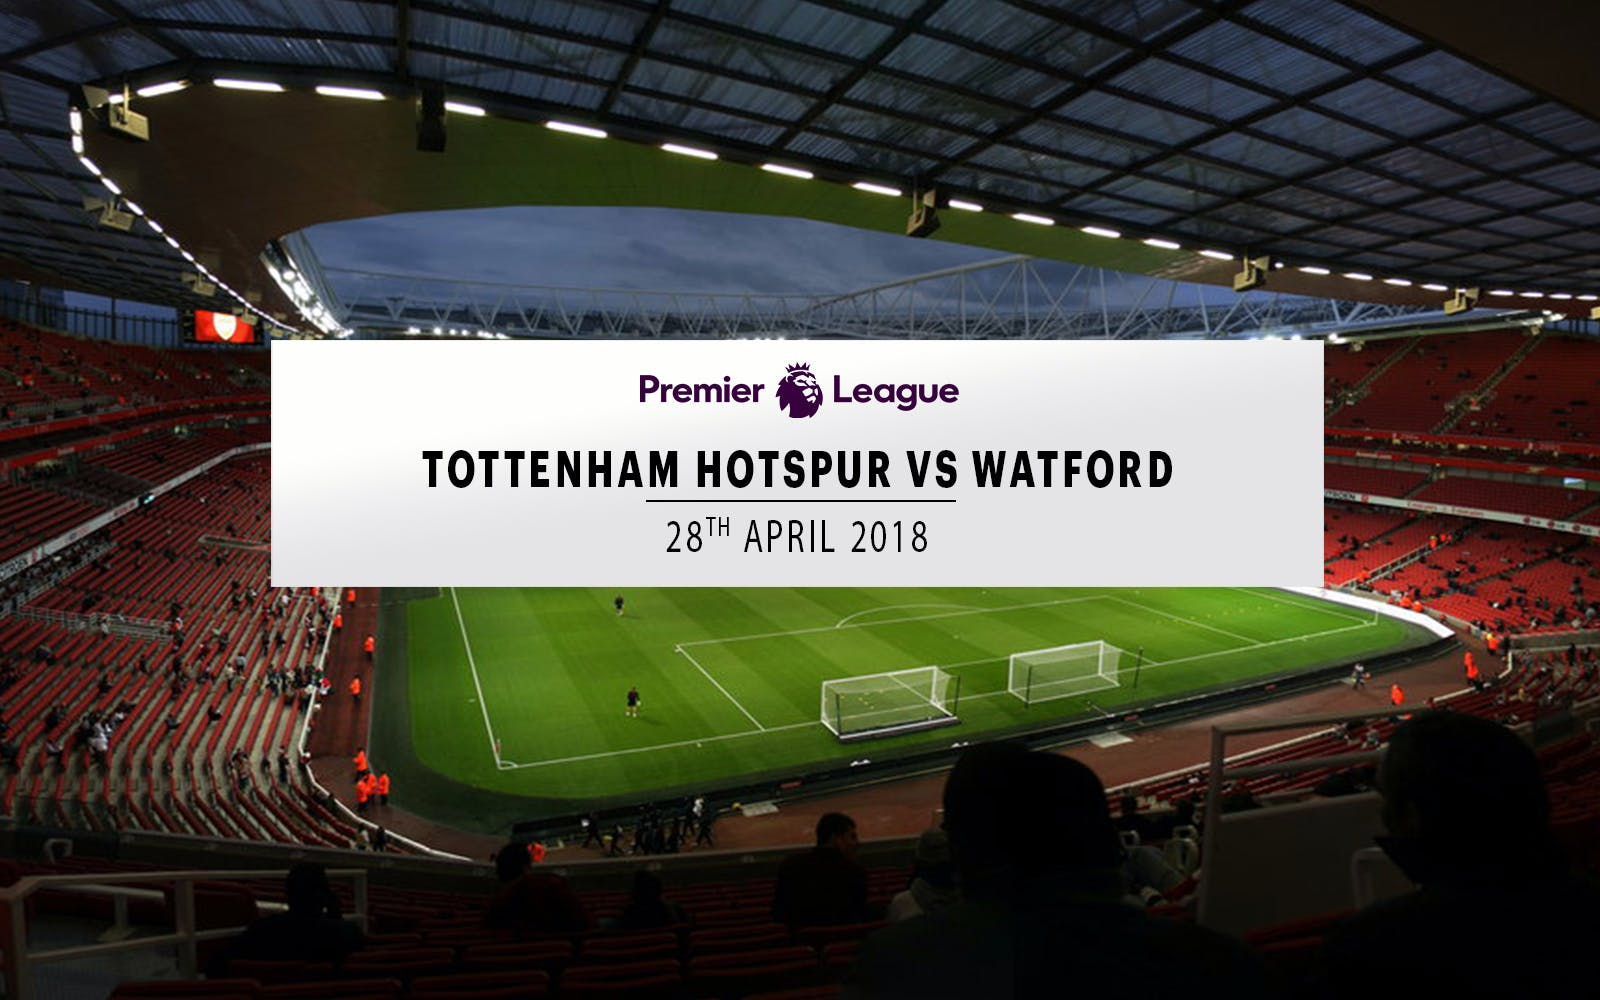 tottenham hotspur vs watford - 28th april 2018-1